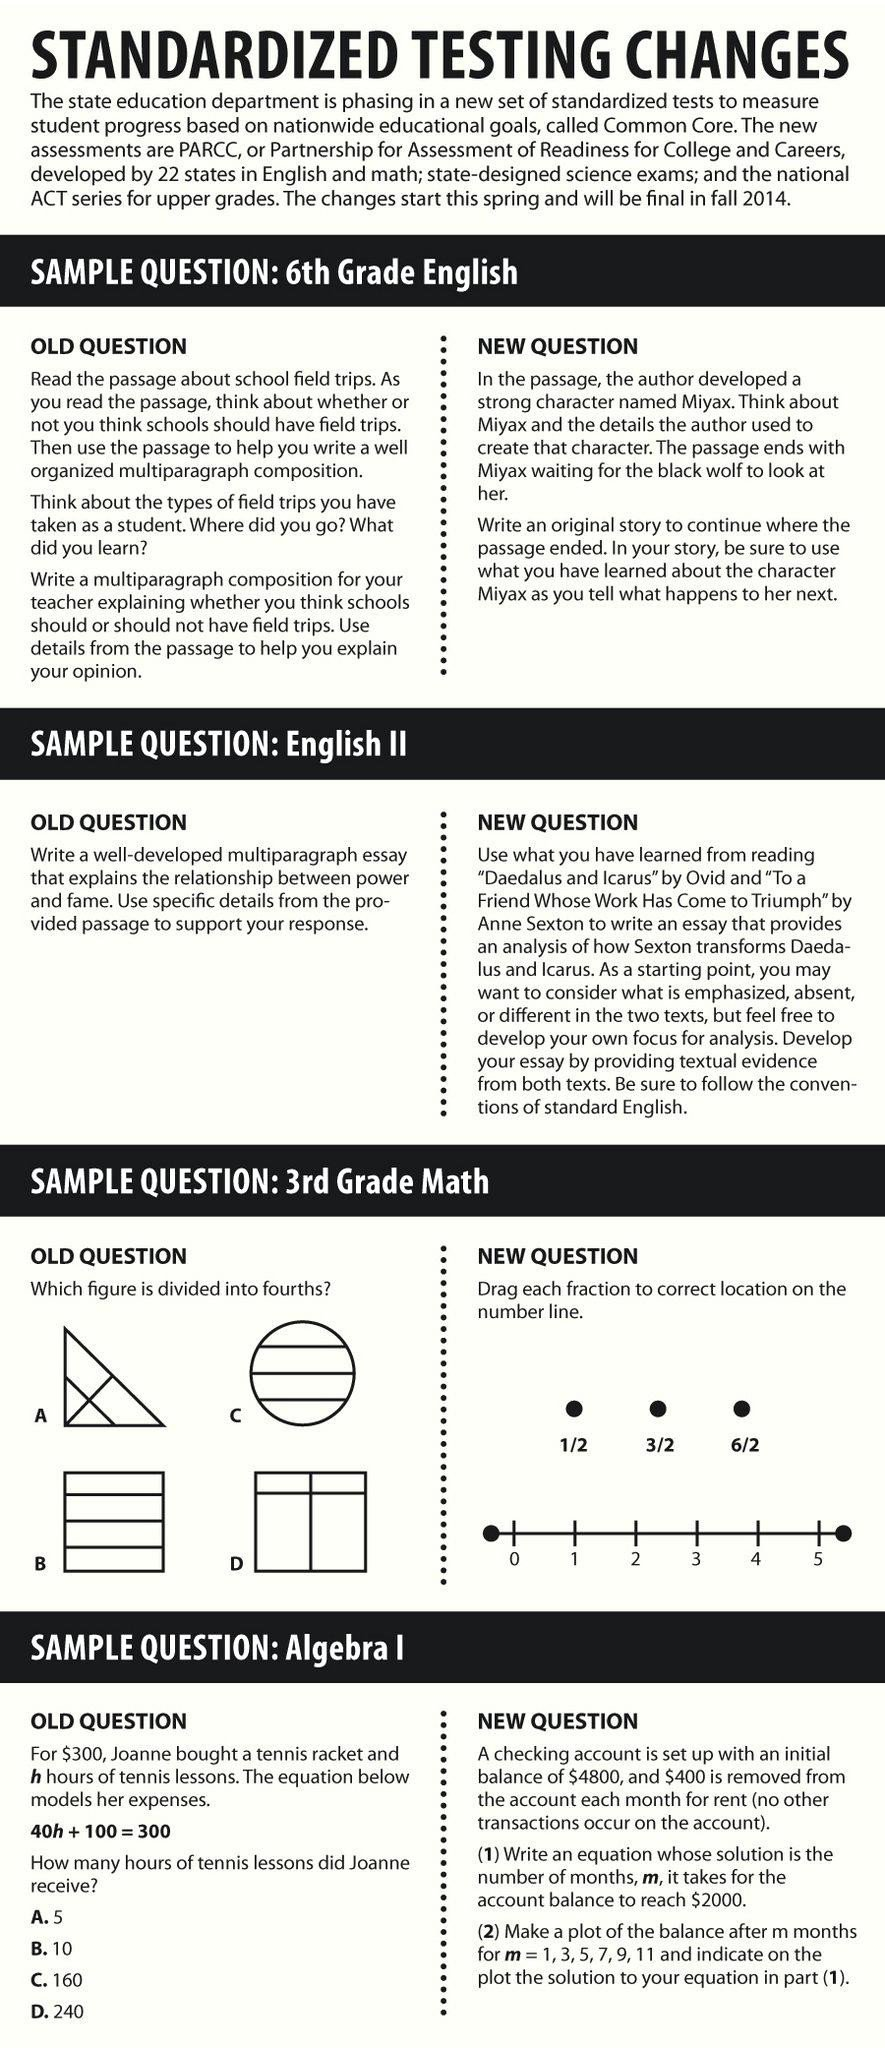 social stu s questions for 5th graders view sample questions full size social stu s test questions 5th grade